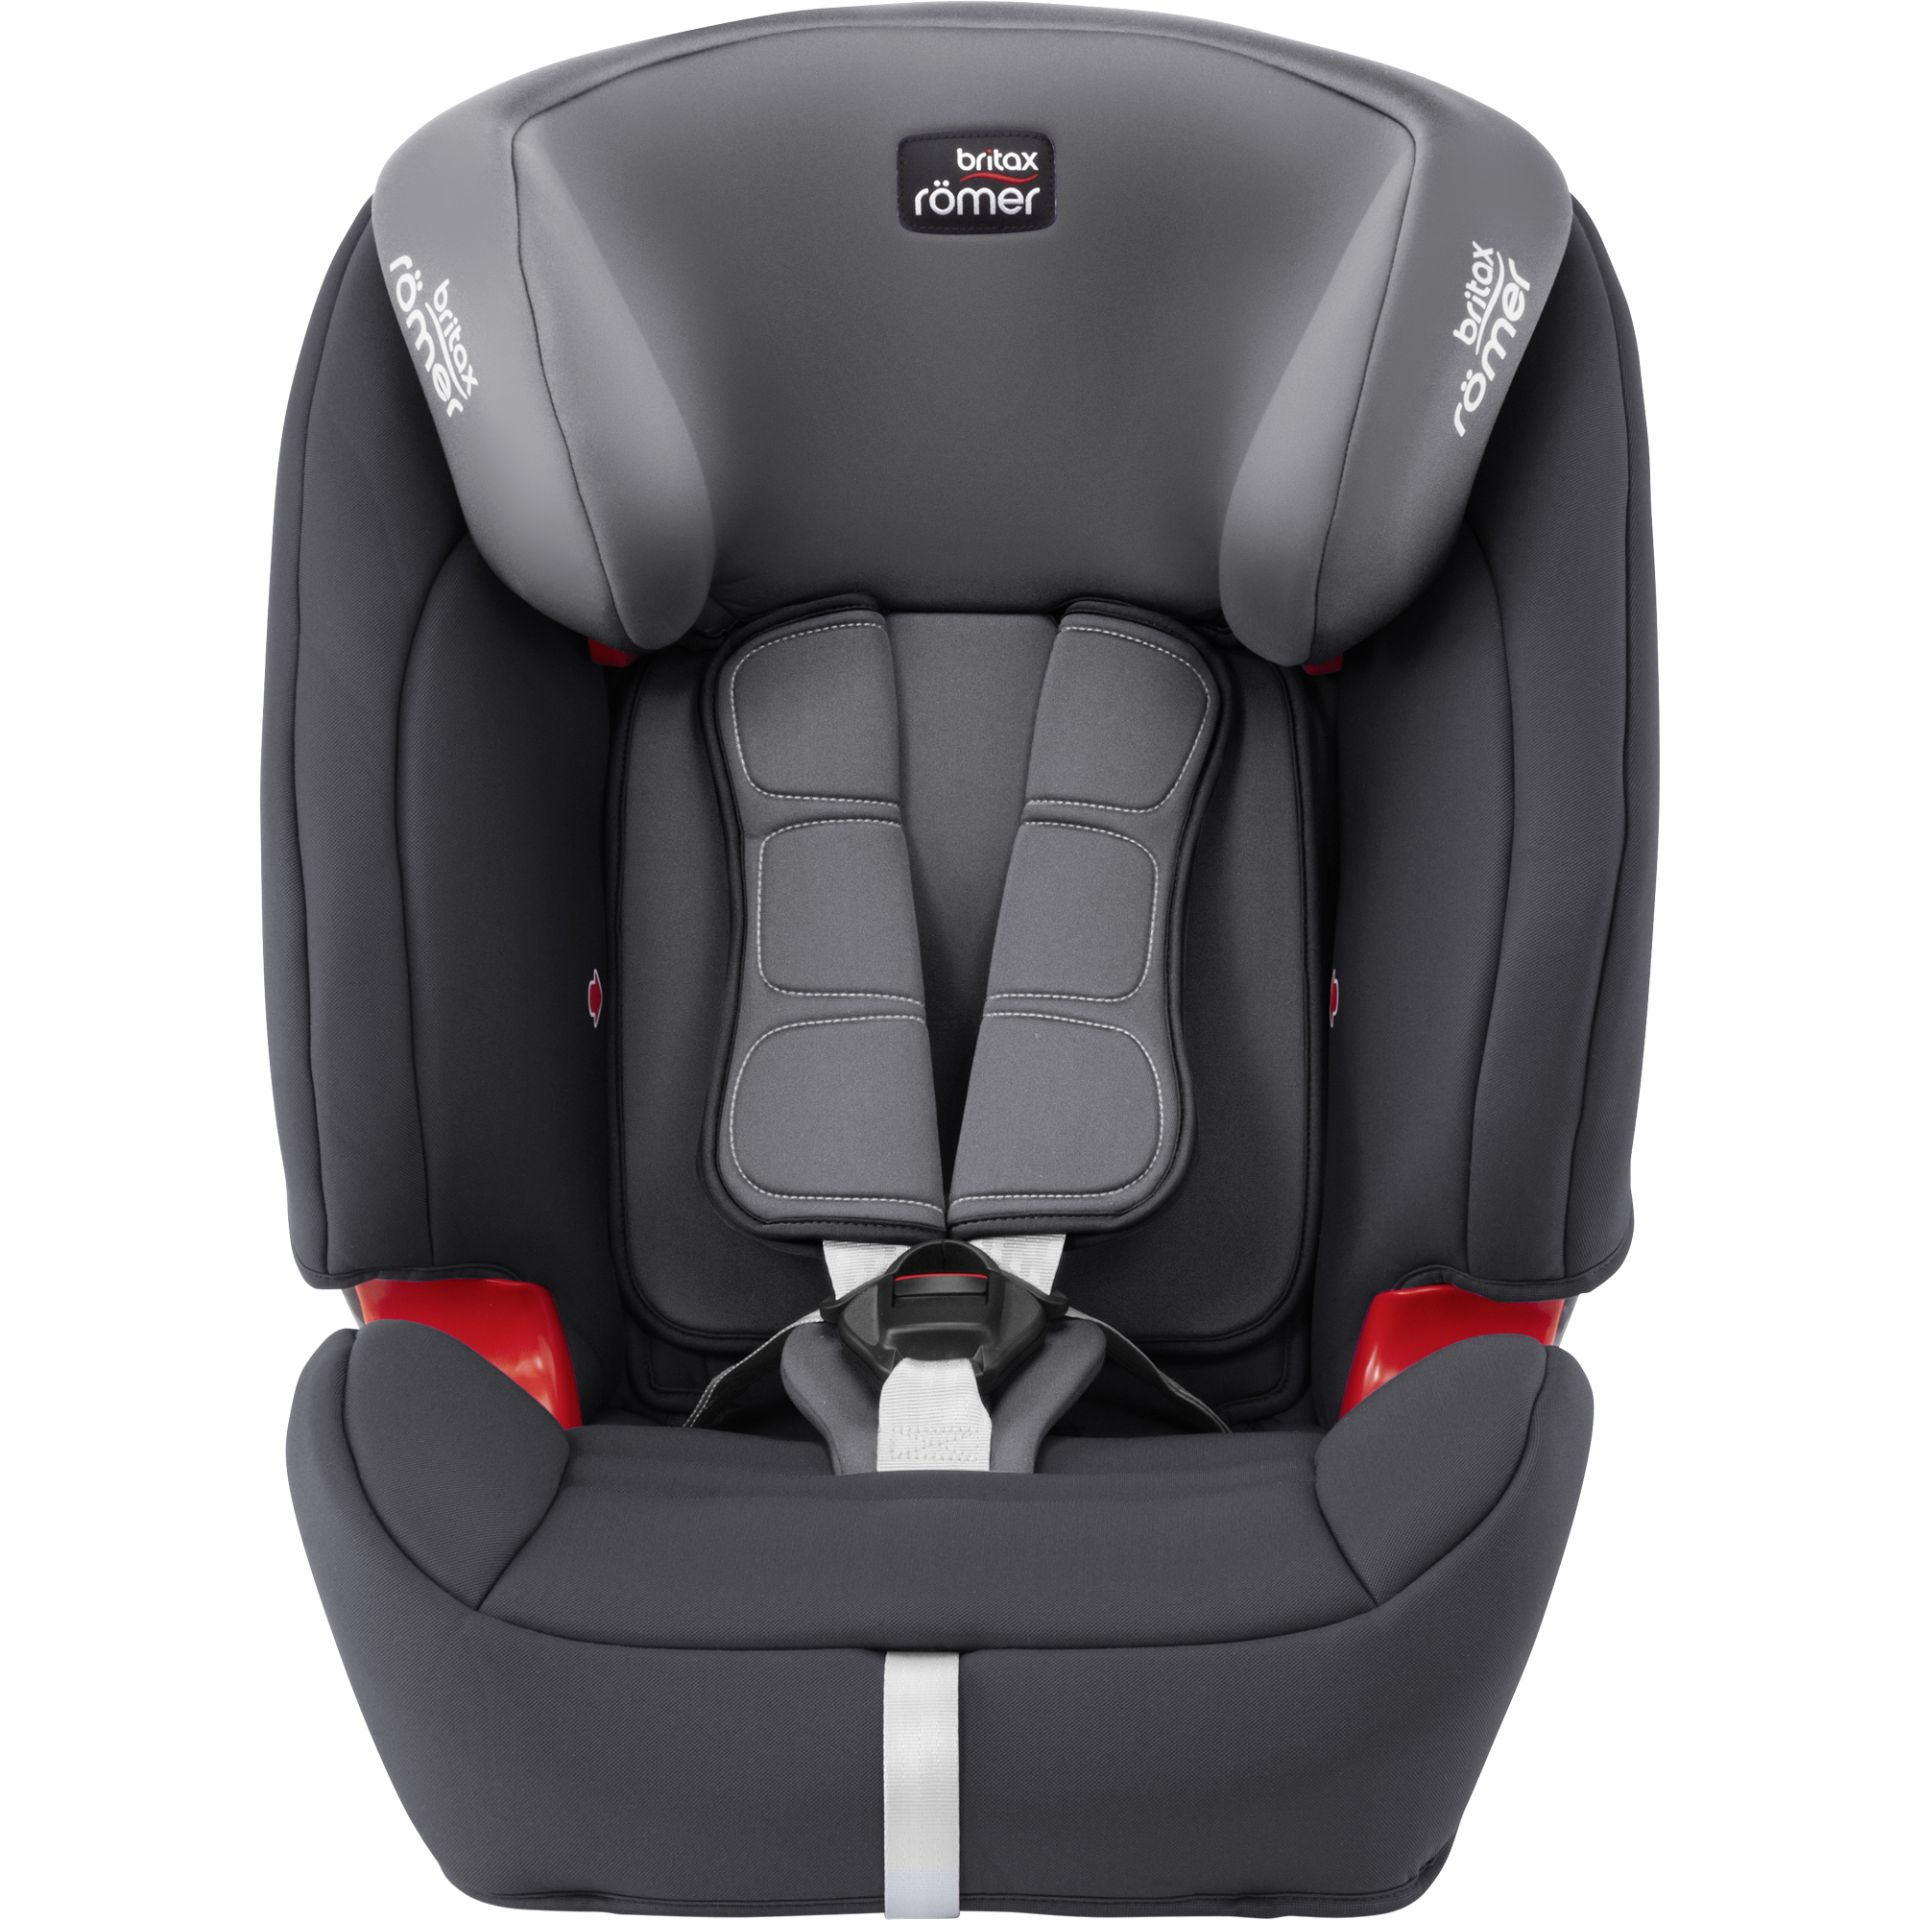 britax r mer car seat evolva 1 2 3 sl sict isofix buy at. Black Bedroom Furniture Sets. Home Design Ideas